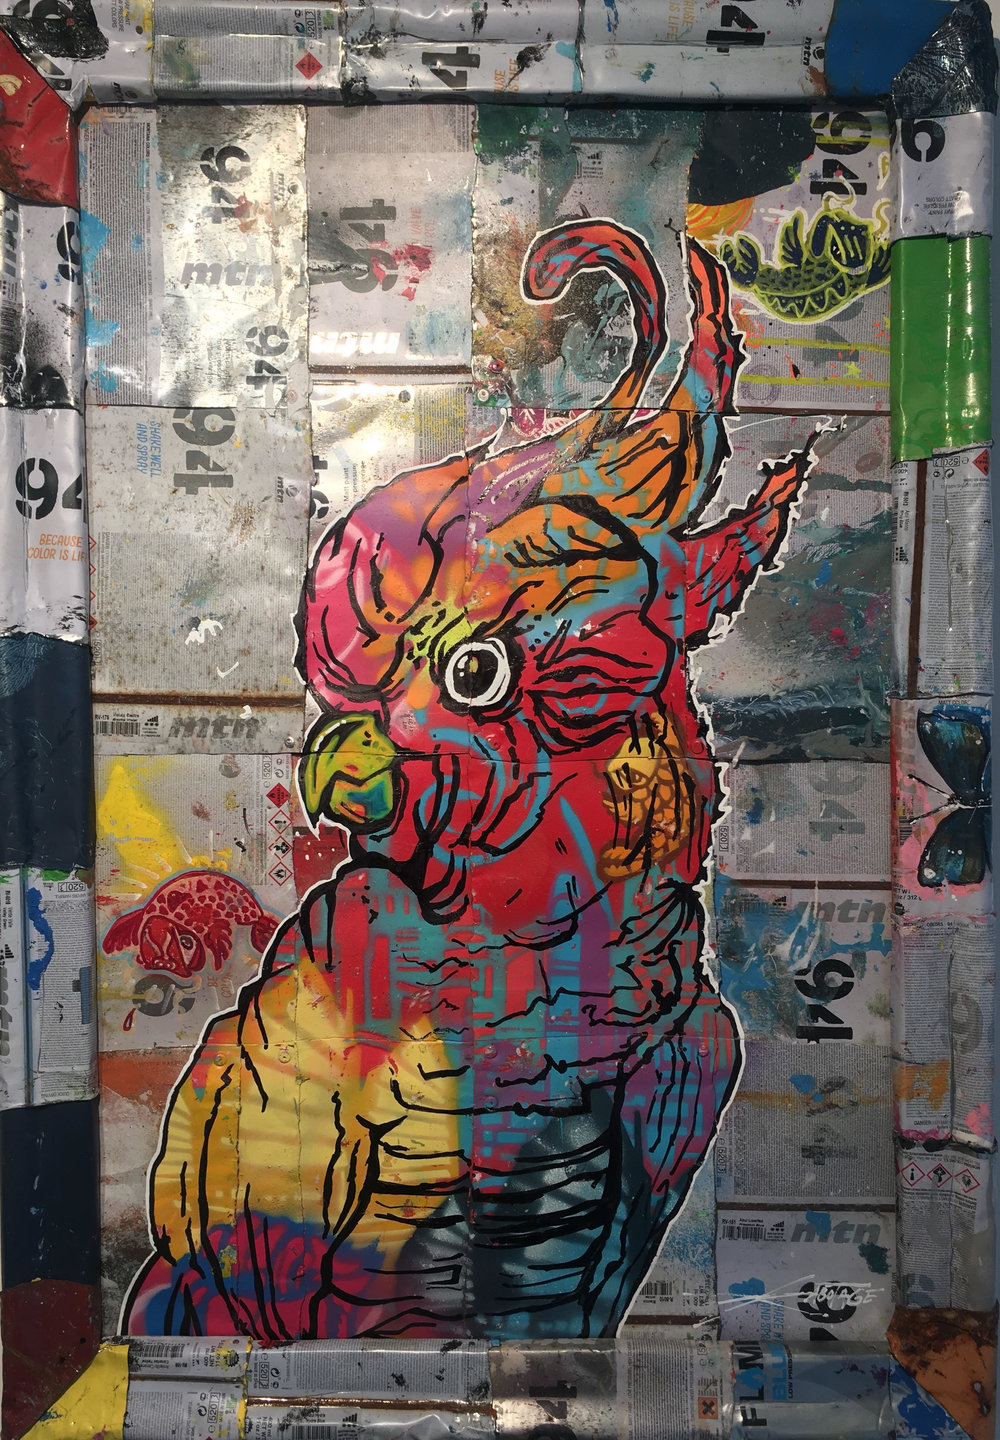 """""""Birdie Macaw"""" Stencil Mixed Media Spray Paint and Graffiti Markers on deconstructed Can Background 78 x 54 cm 2018"""